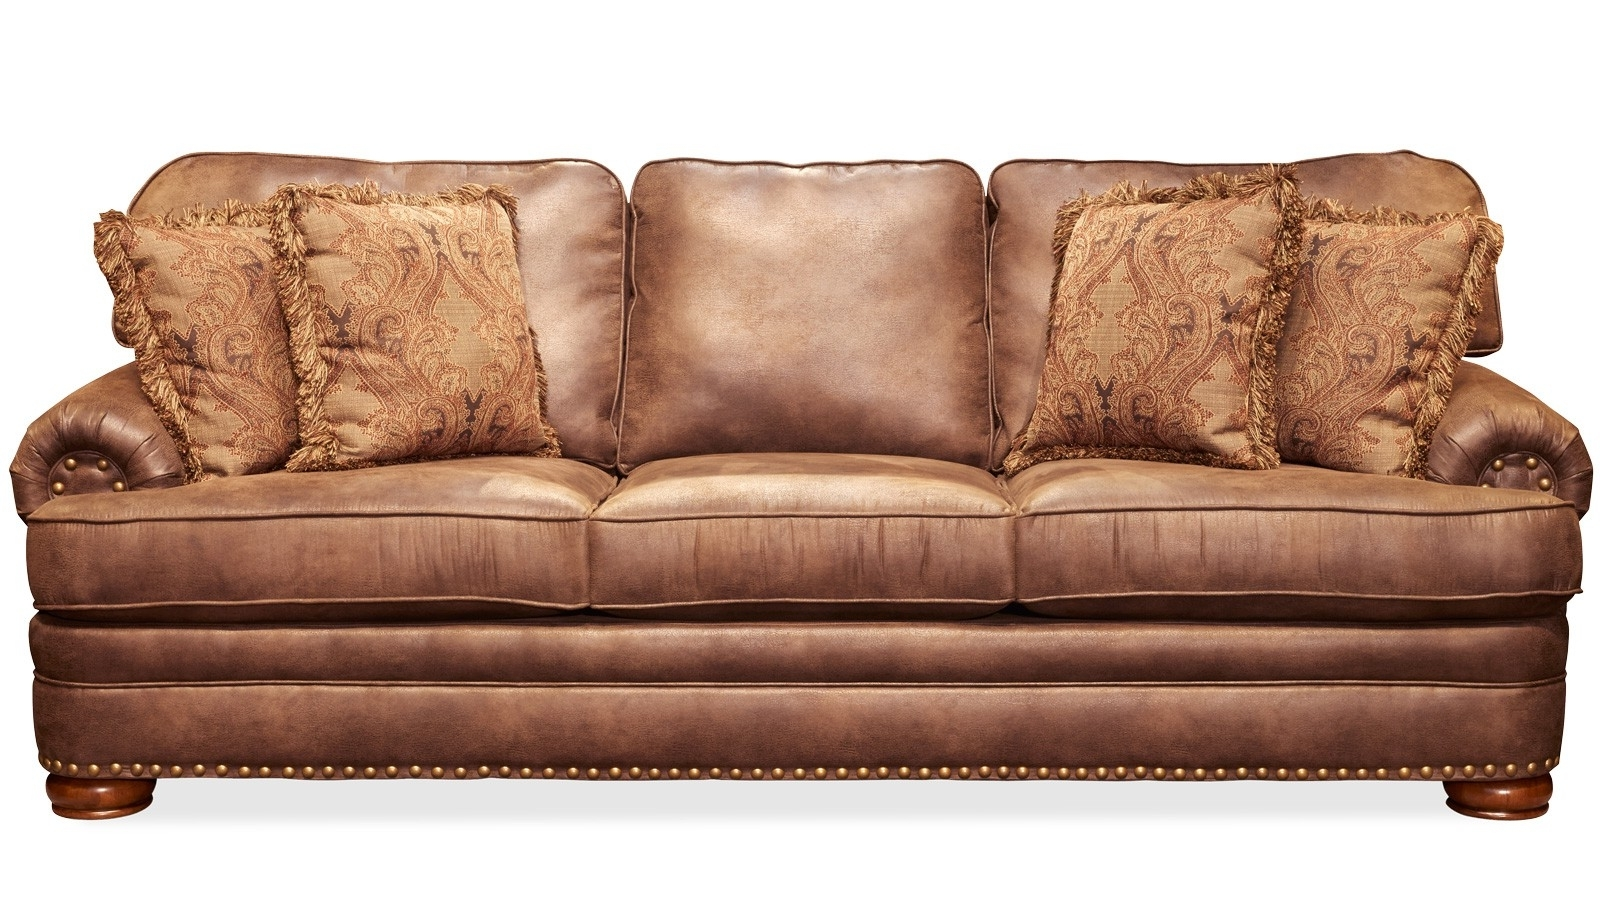 Gallery Furniture for El Paso Sectional Sofas